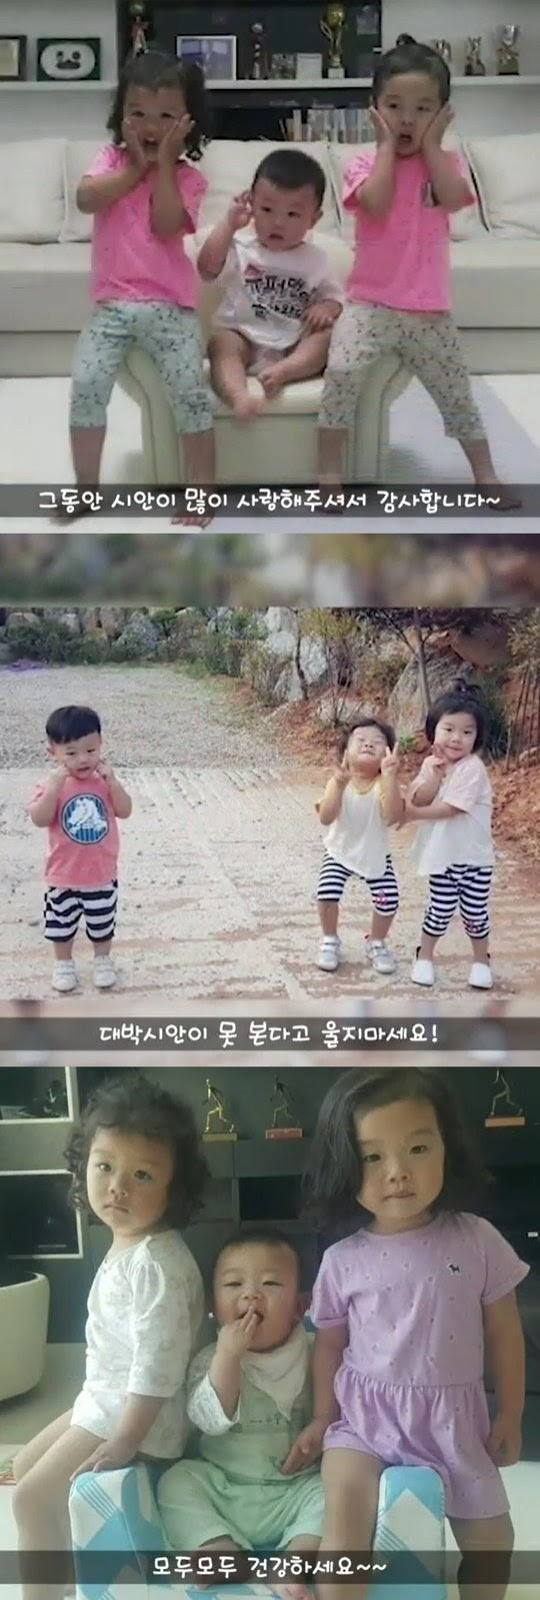 Lee Dong Guk'un ailesi 'Superman Returns' şovuna elveda dedi